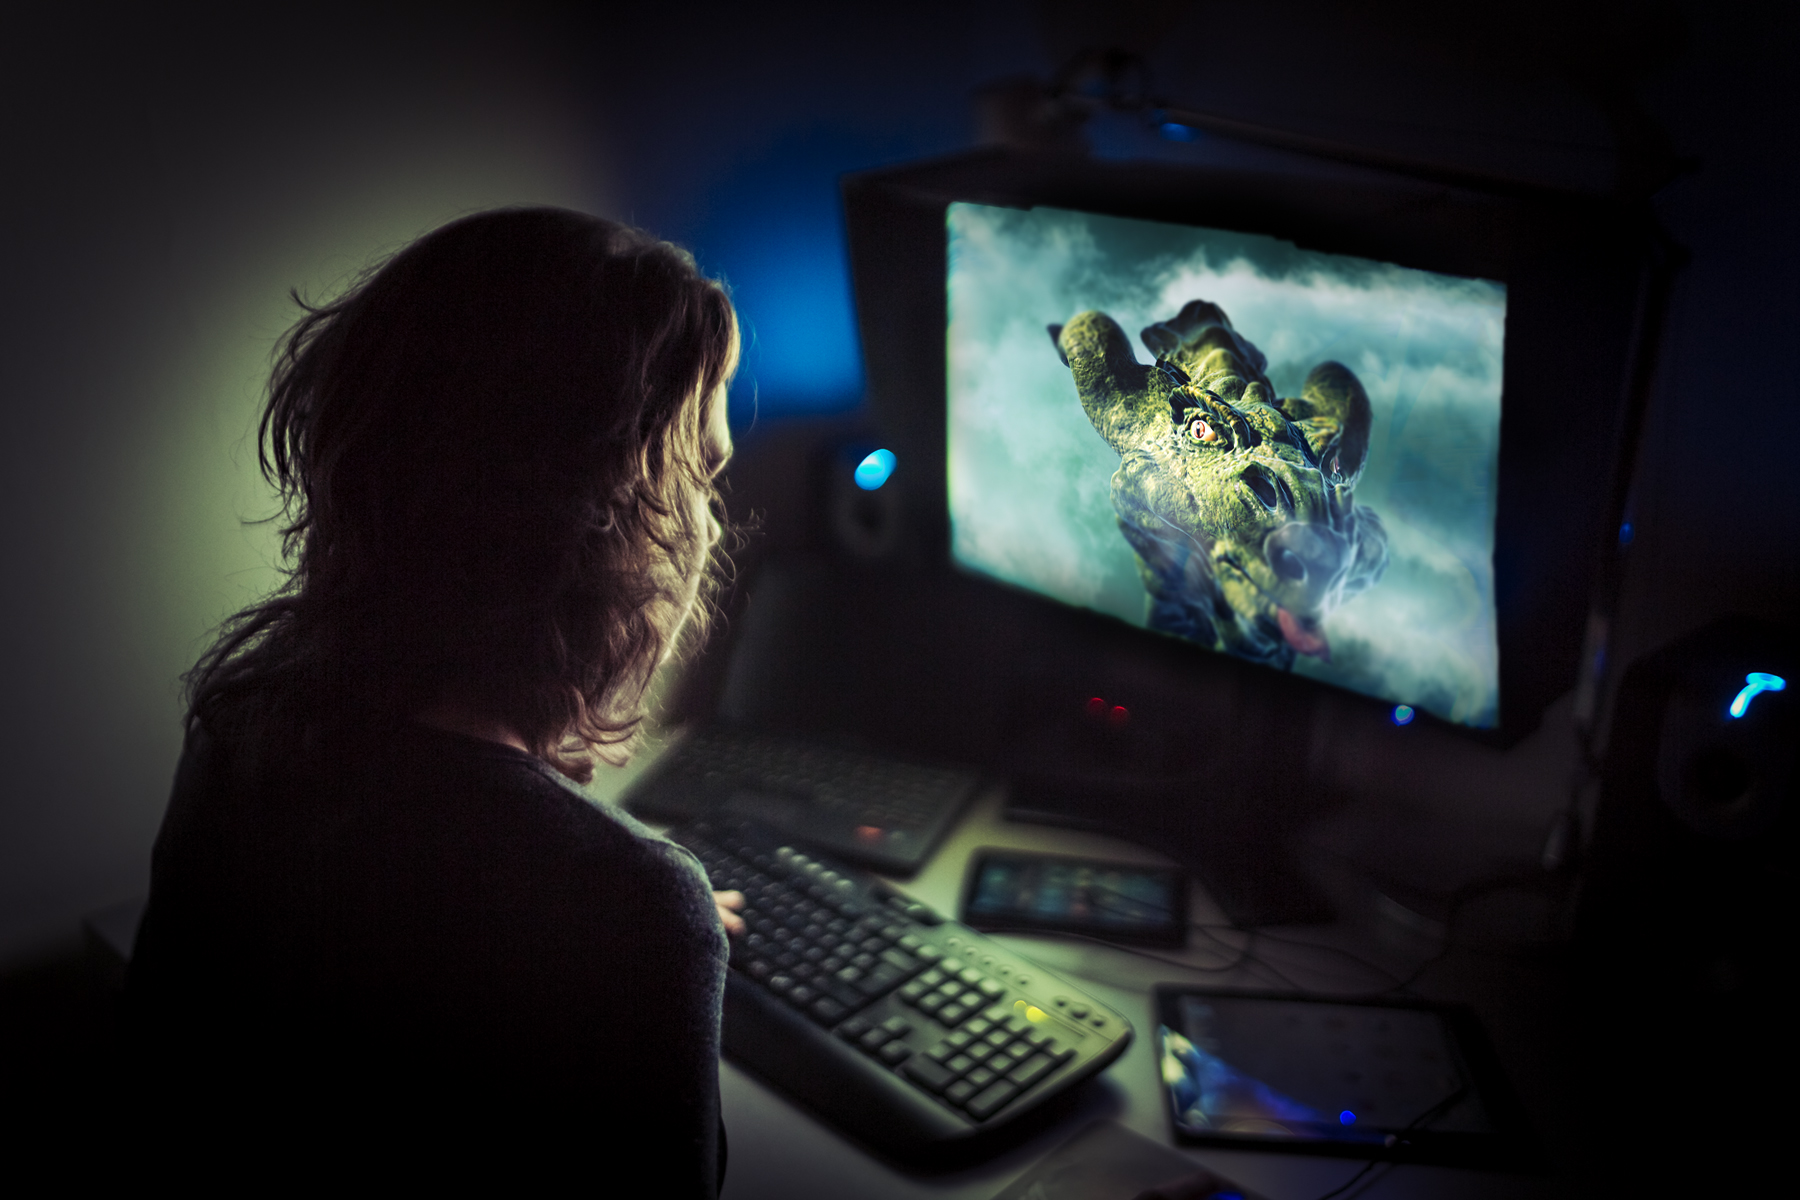 graphic artist working late at night. Dragon imagery is displayed on the monitor